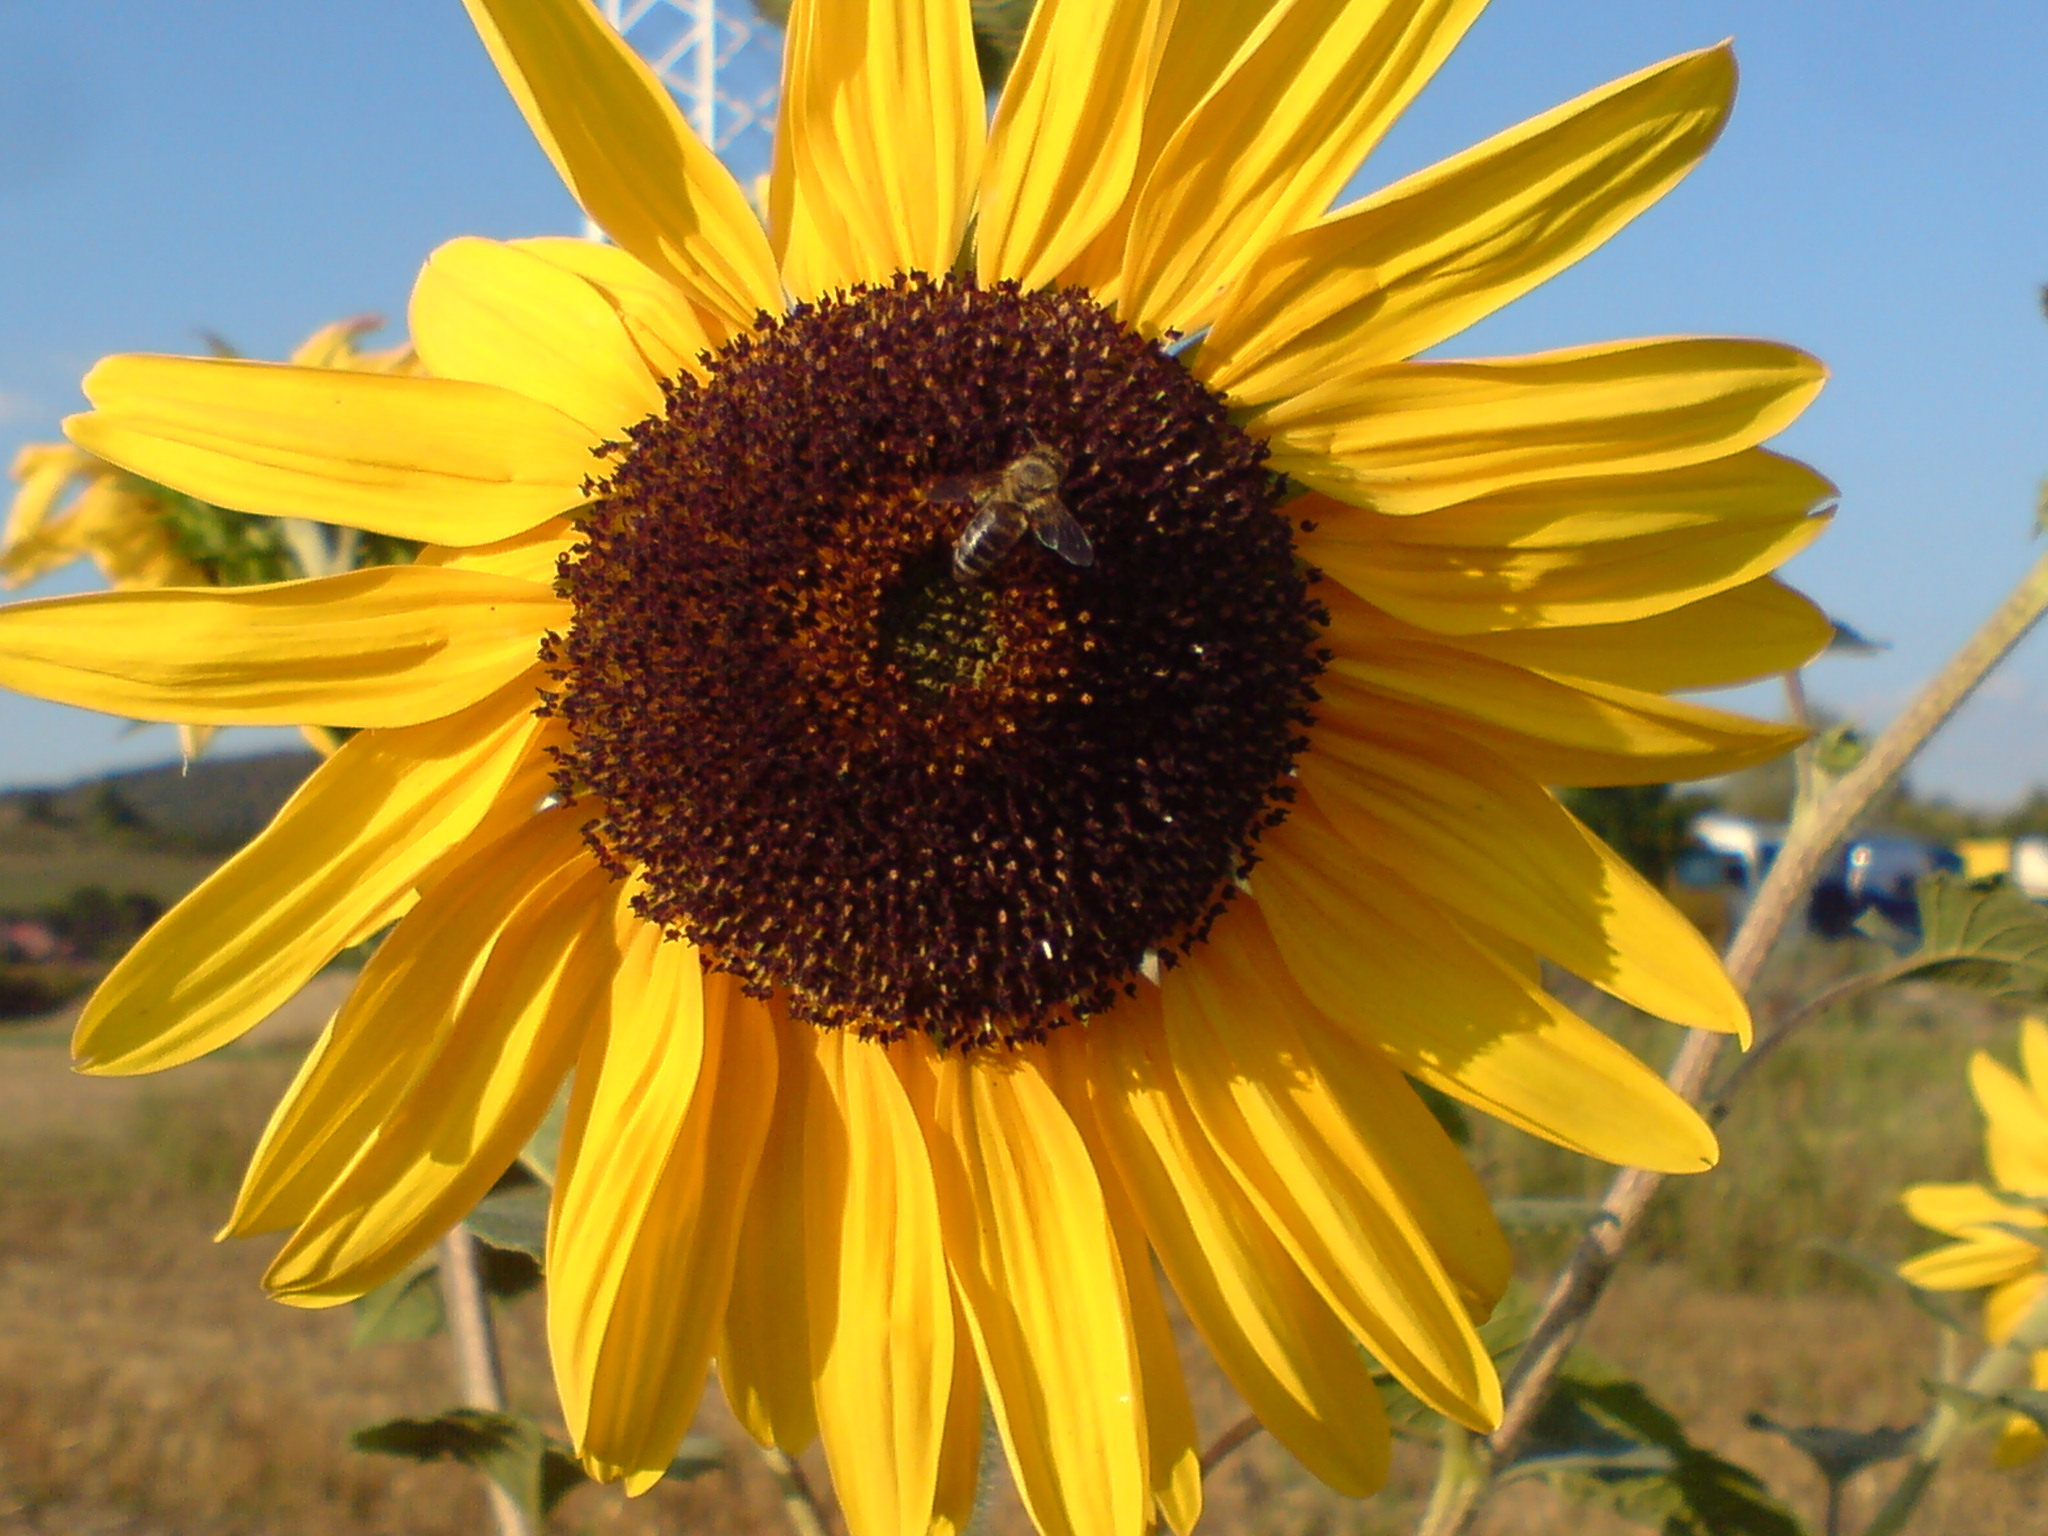 bee harvesting pollen on sunflower